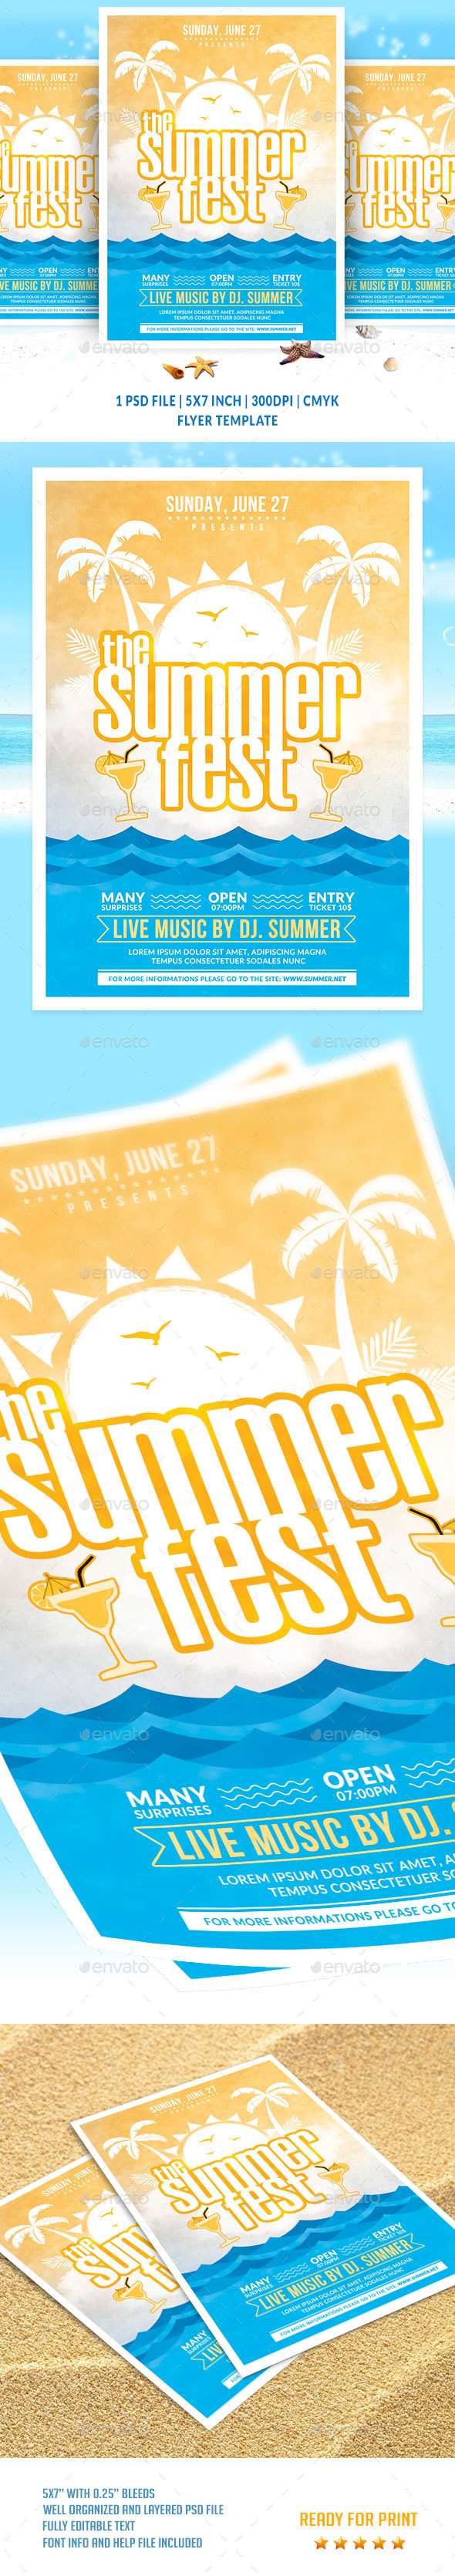 The Summer Fest Flyer Template - Clubs & Parties Events